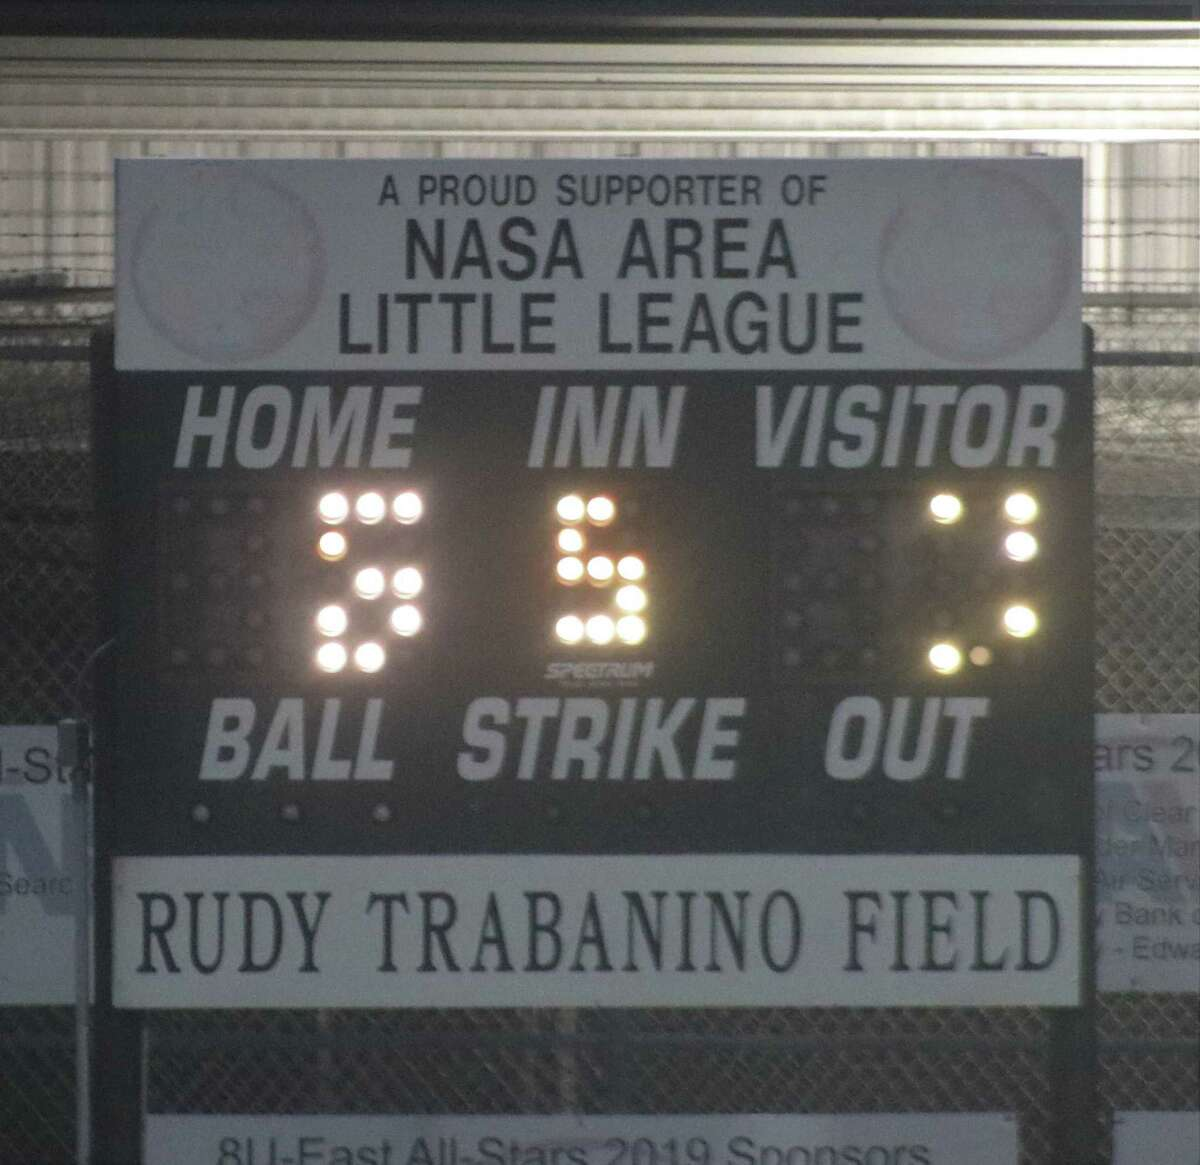 Because of its age, the previous Rudy Trabanino Field scoreboard had trouble showing the score.